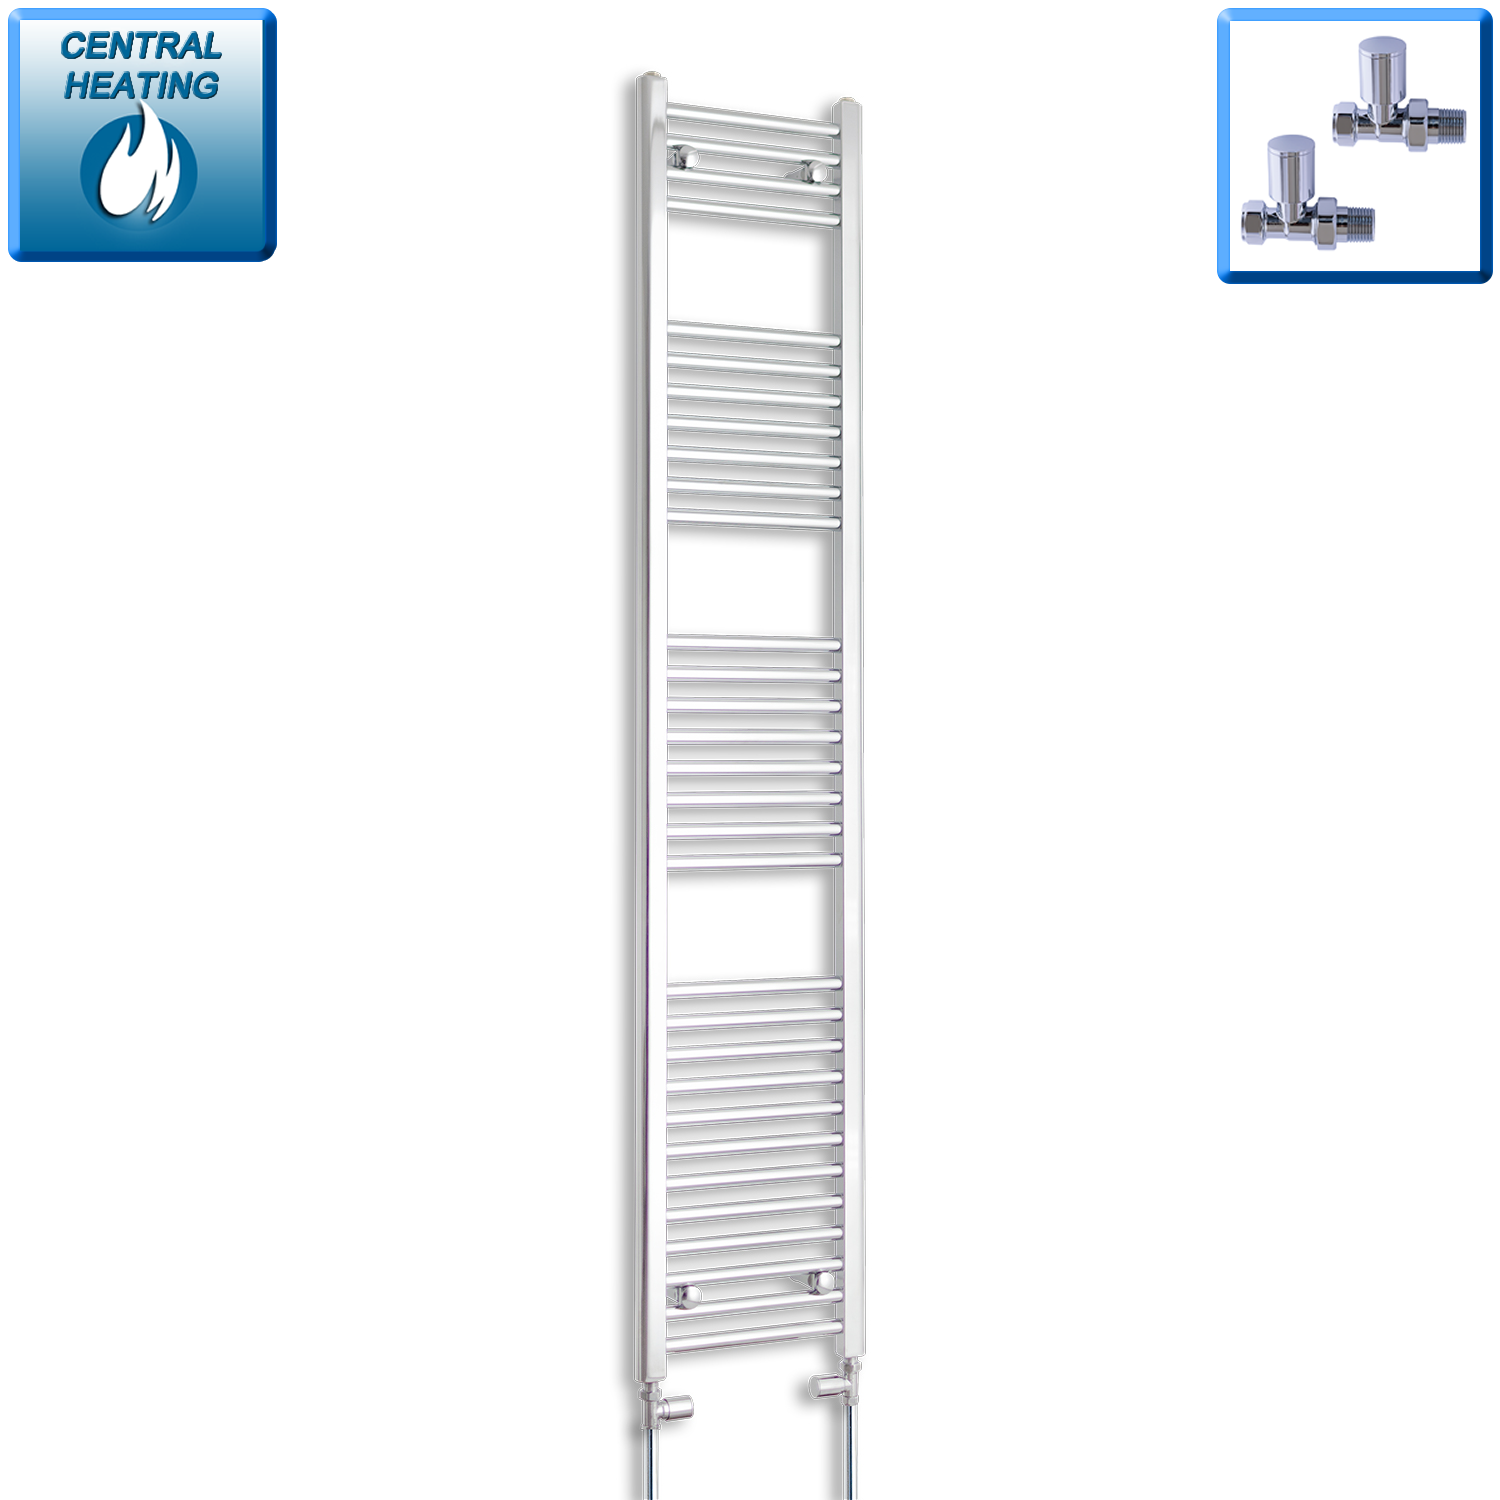 350mm Wide 1800mm High Flat Chrome Heated Towel Rail Radiator,With Straight Valve